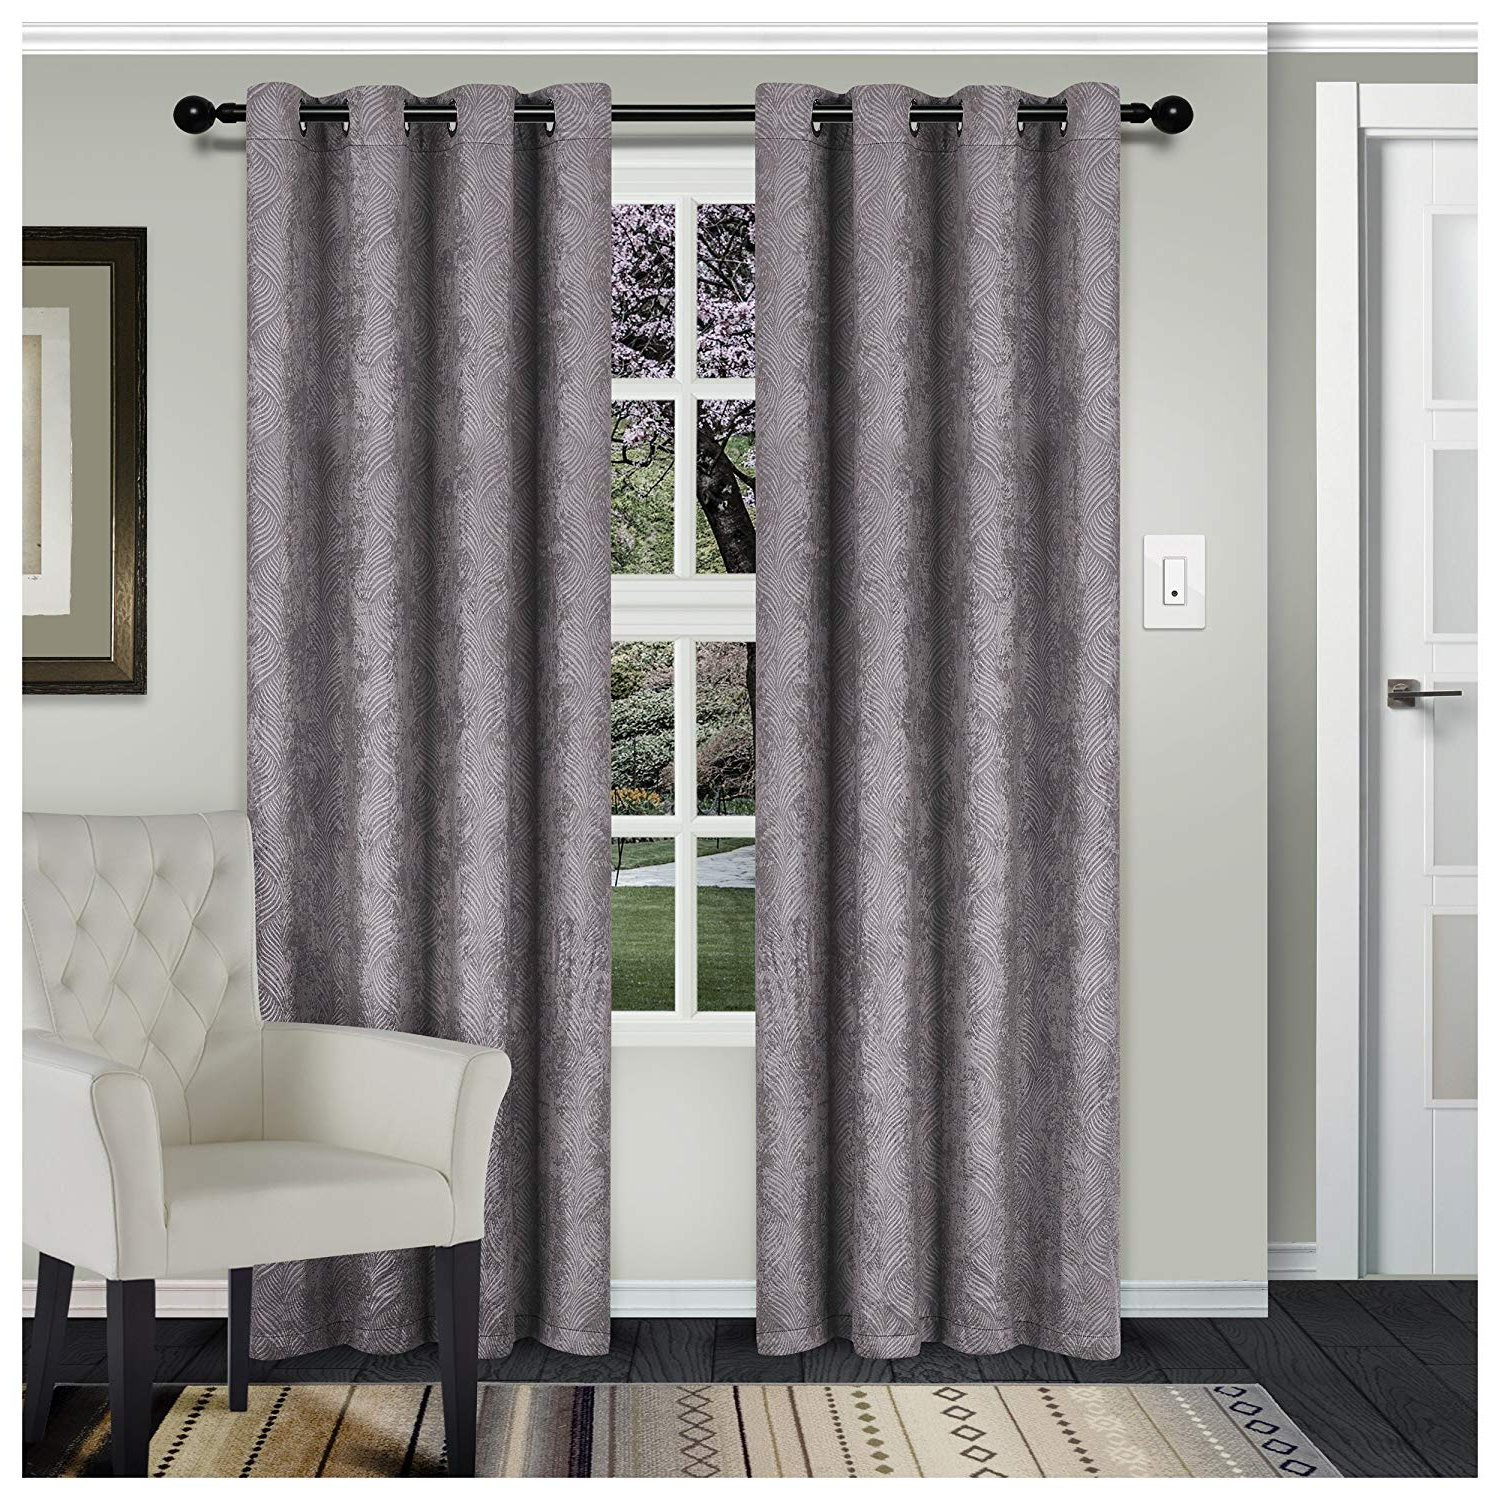 2021 Superior Waverly Blackout Curtain Set Of 2, Thermal Insulated Panel Pair With Grommet Top Header, Beautiful Embossed Wave Room Darkening Drapes, Intended For Insulated Grommet Blackout Curtain Panel Pairs (View 14 of 20)